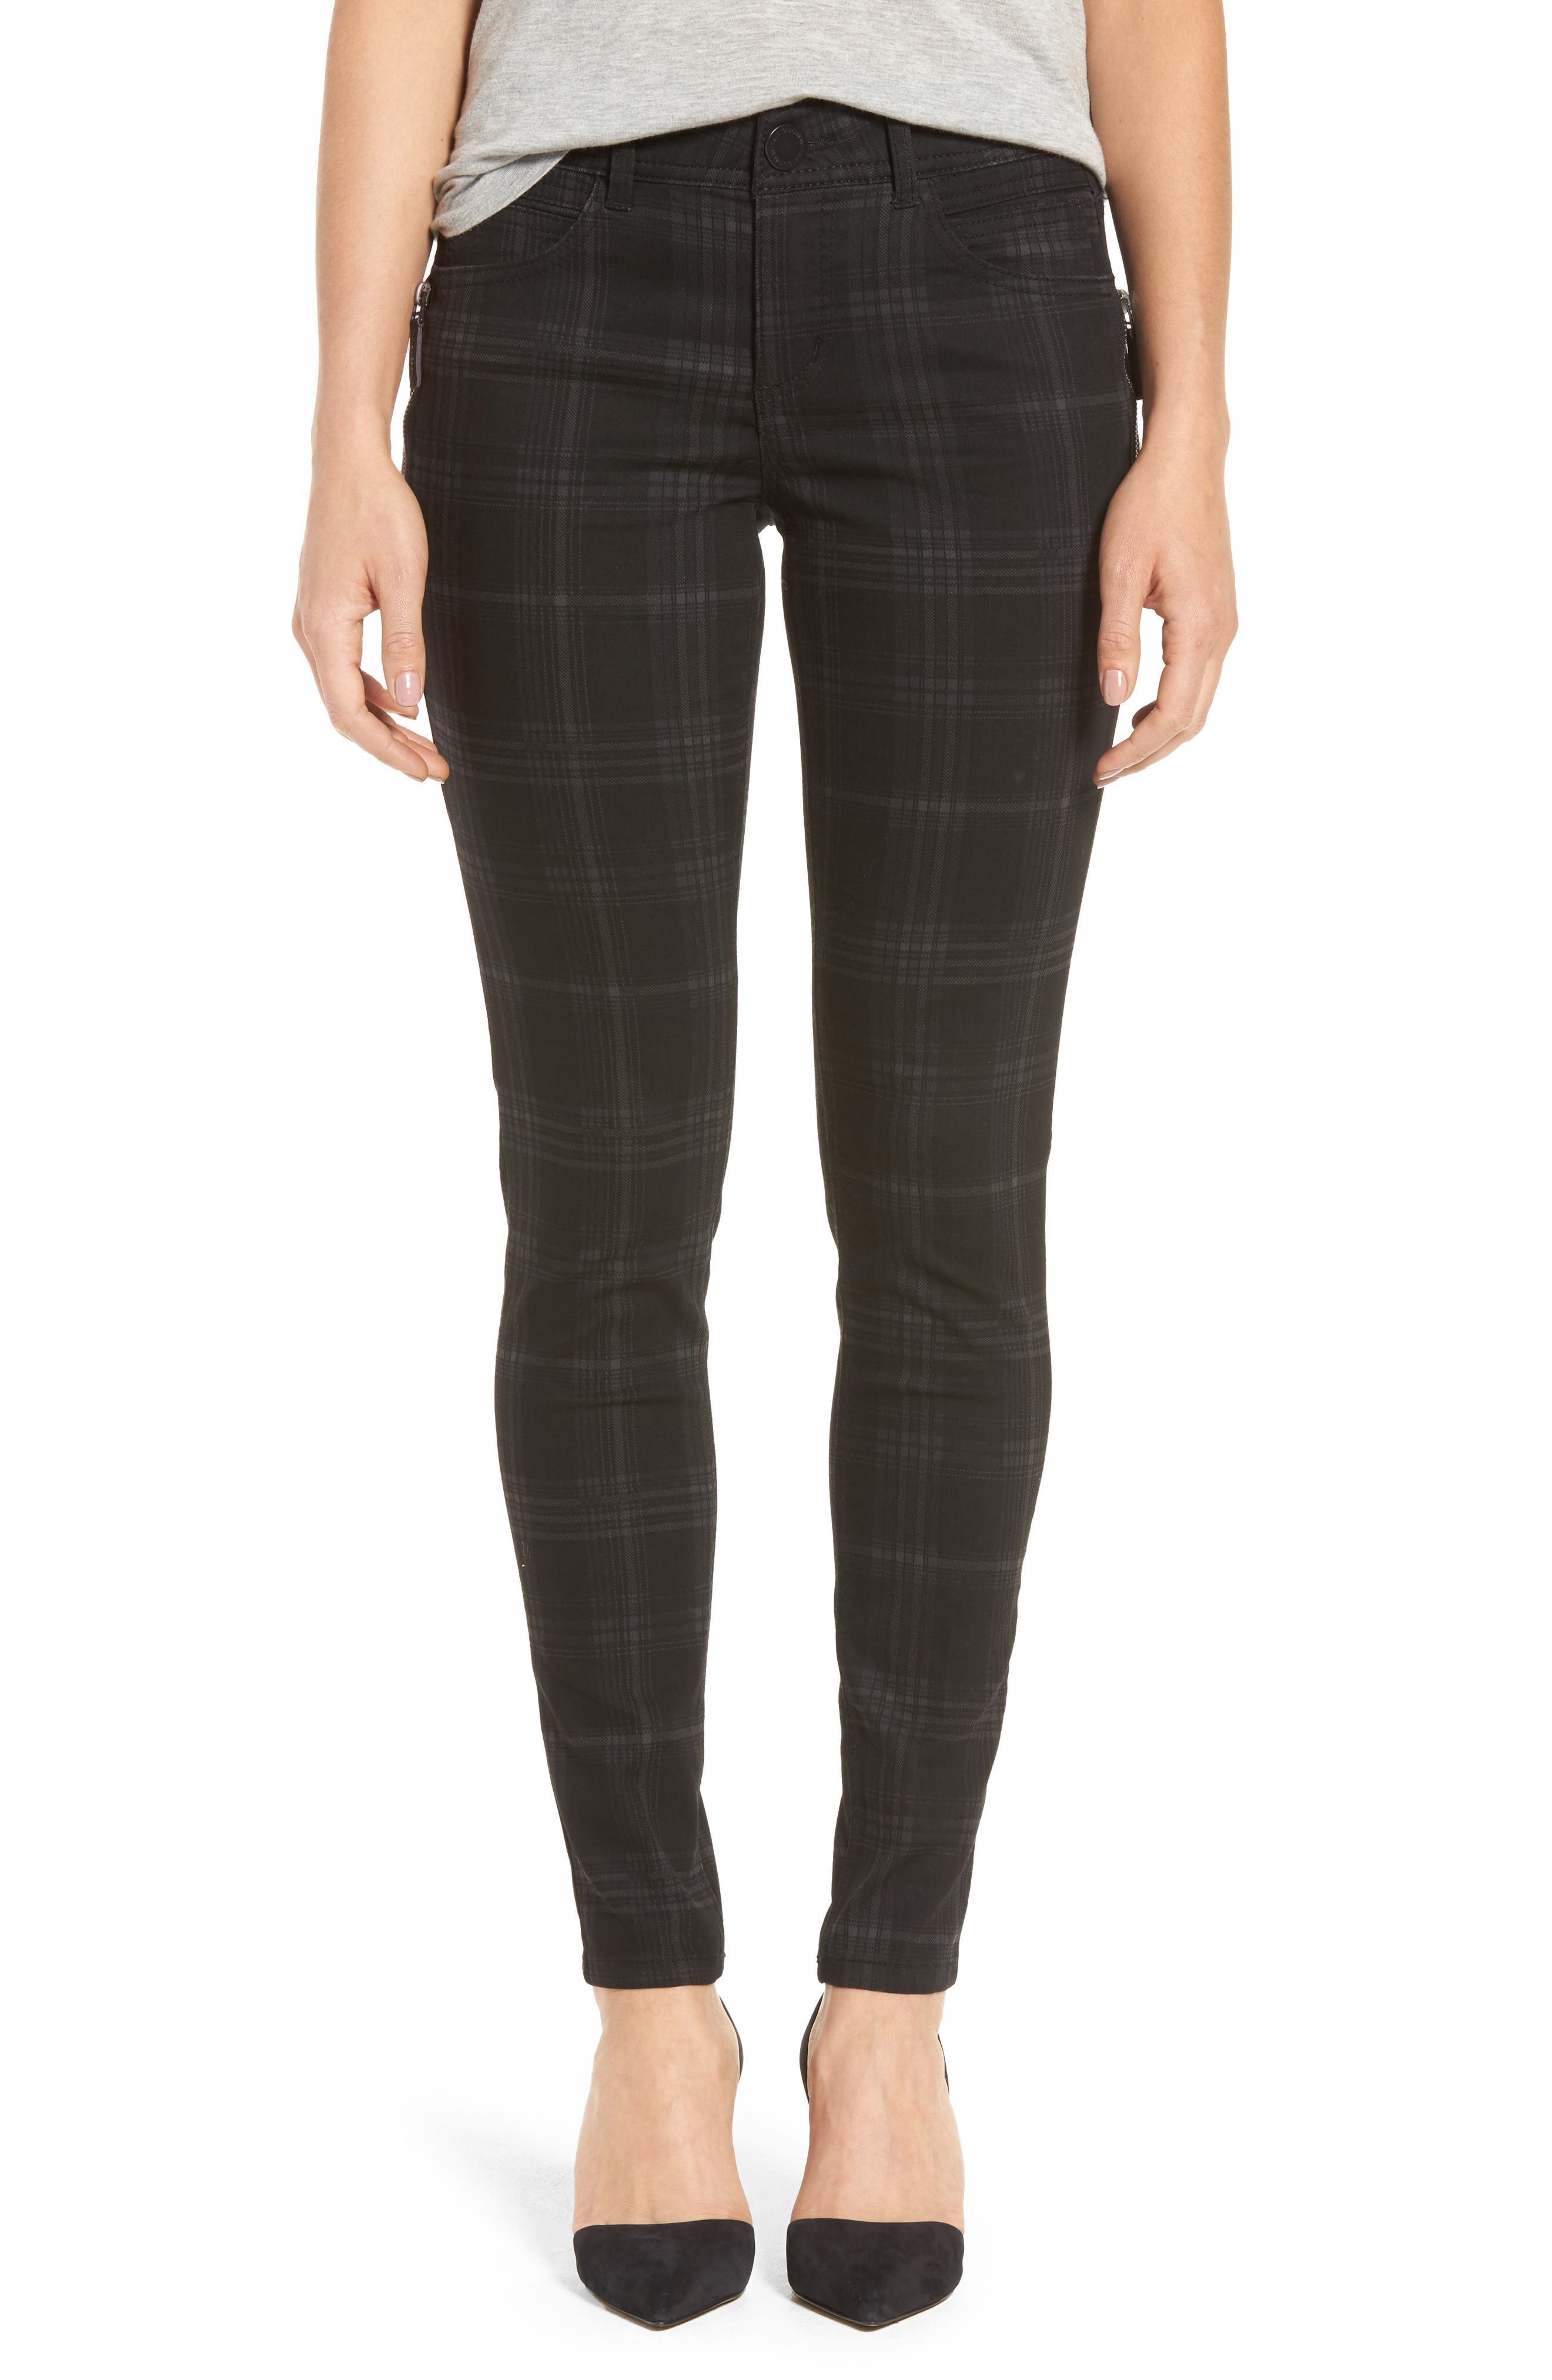 Alternate Image 1 Selected - Wit & Wisdom Ab-solution Side Zip Plaid Skinny Pants (Regular & Petite) (Nordstrom Exclusive)